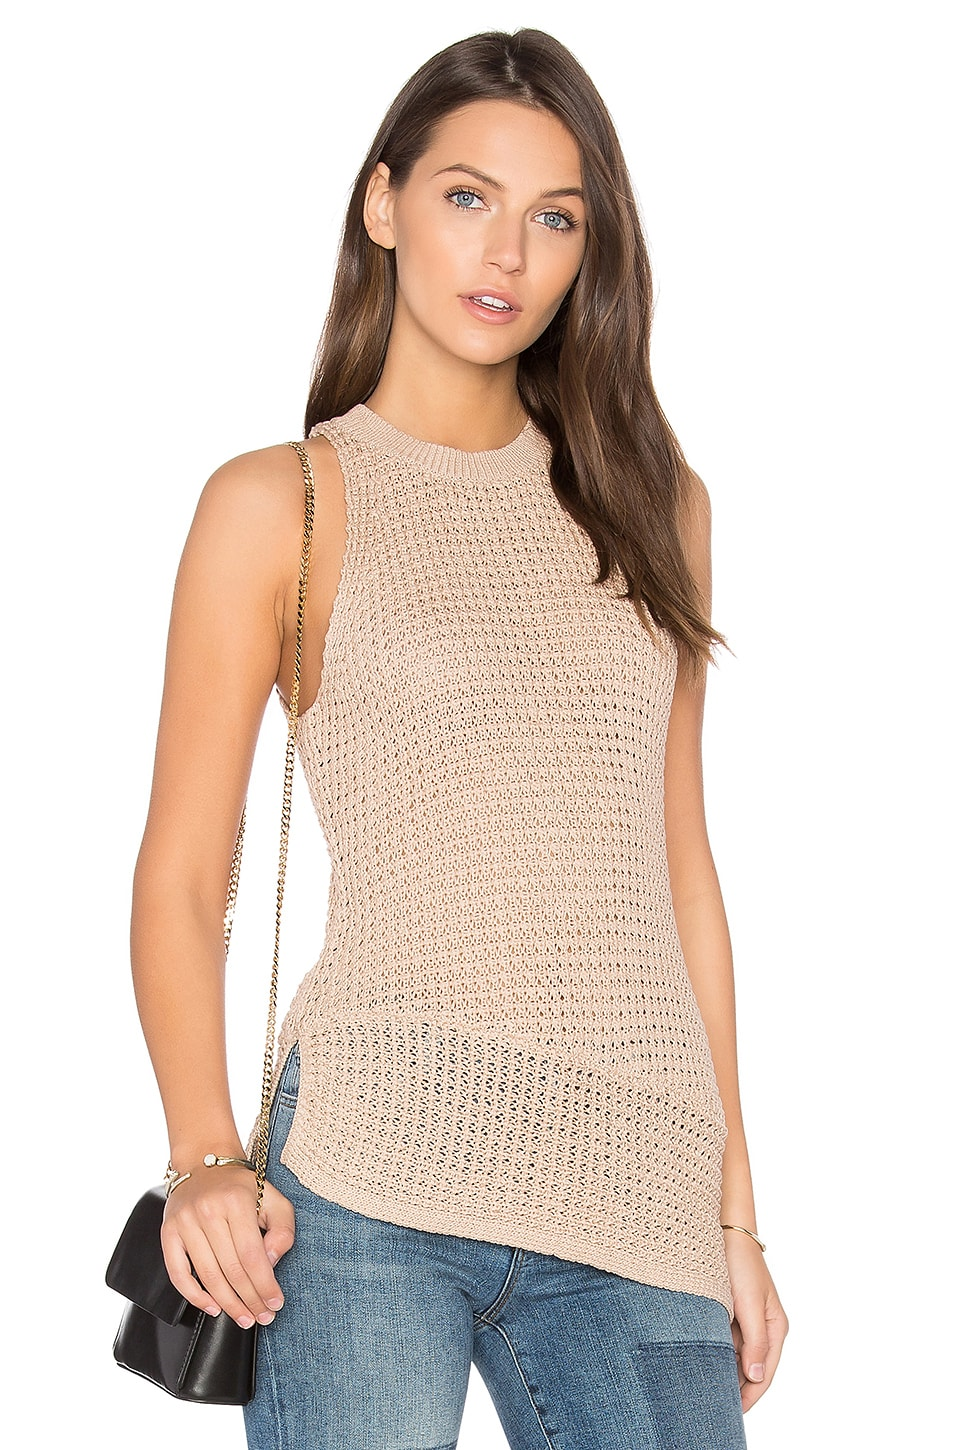 One Grey Day Evie Sleeveless Sweater in Sand